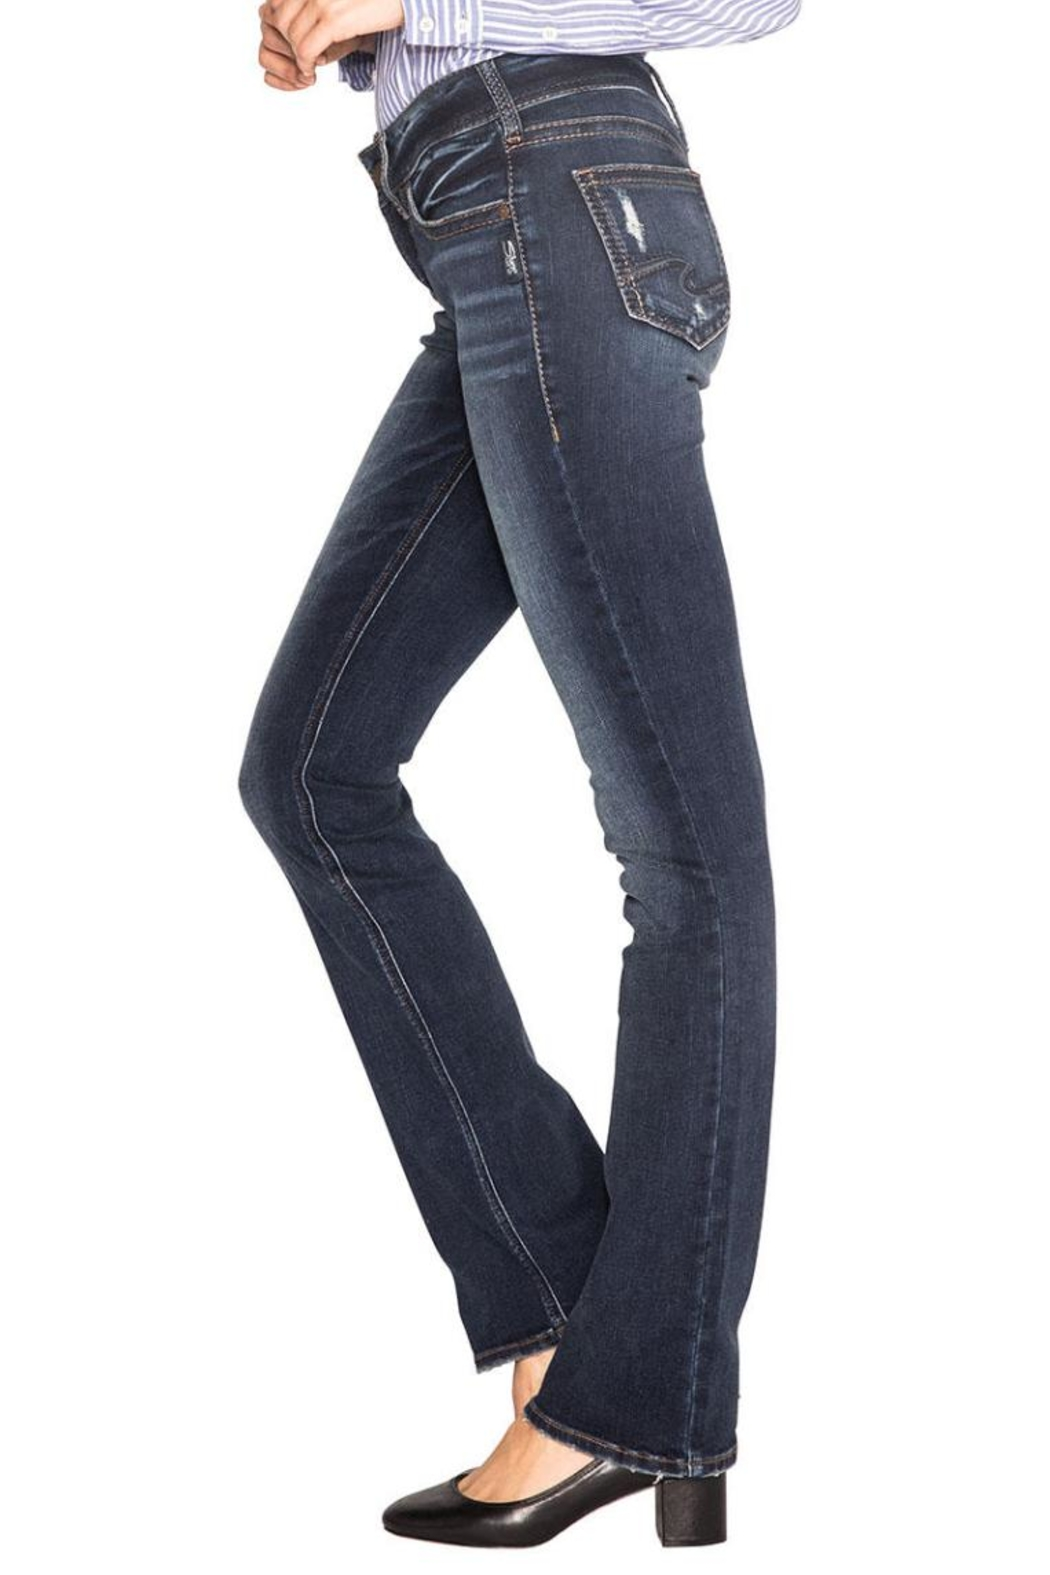 Silver Jeans Co. Suki Slim Boot - Side Cropped Image